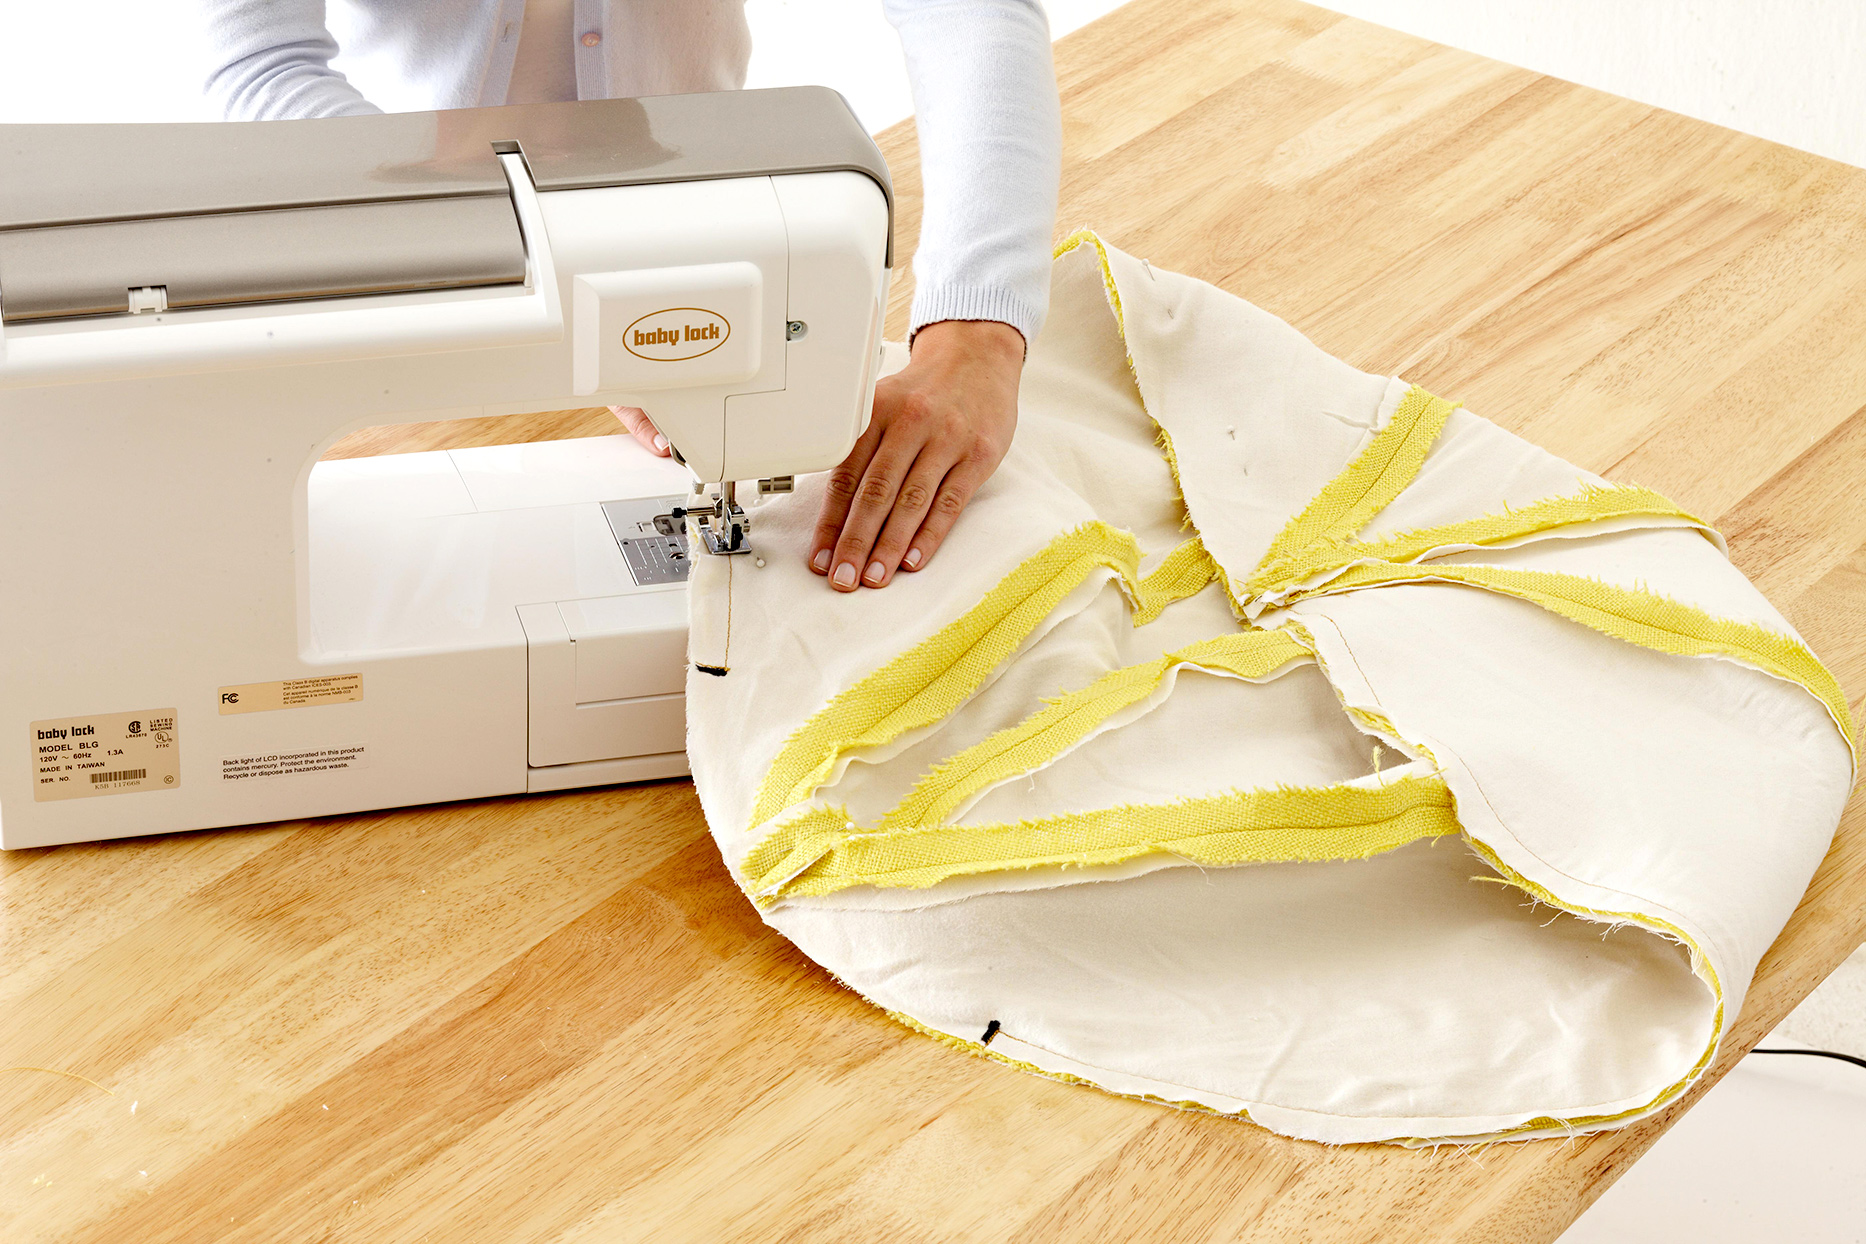 Person using sewing machine to sew pouf together